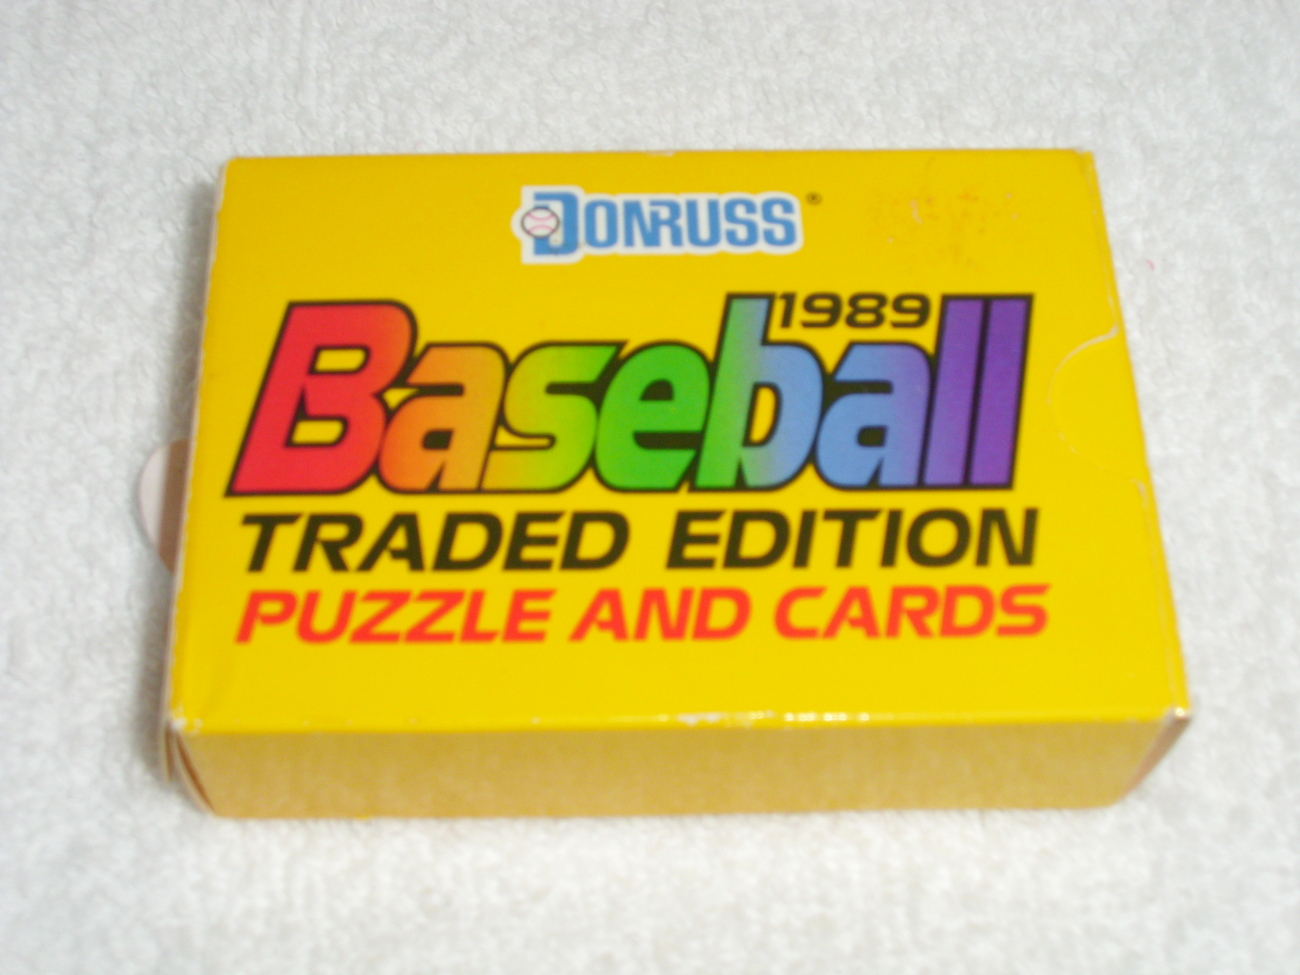 Donruss 1989 Baseball Traded Edition Puzzle and Cards